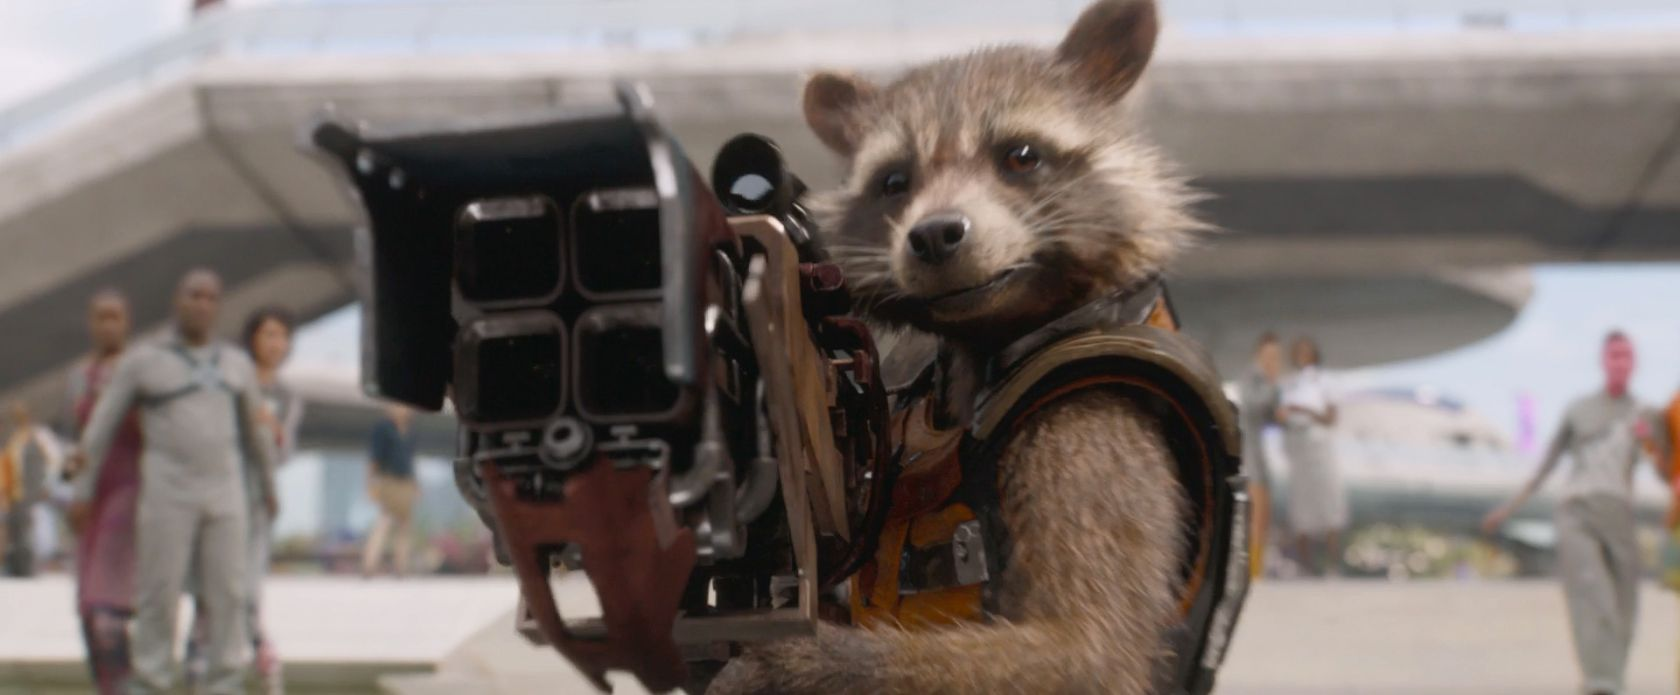 Image result for rocket raccoon guardians of the galaxy